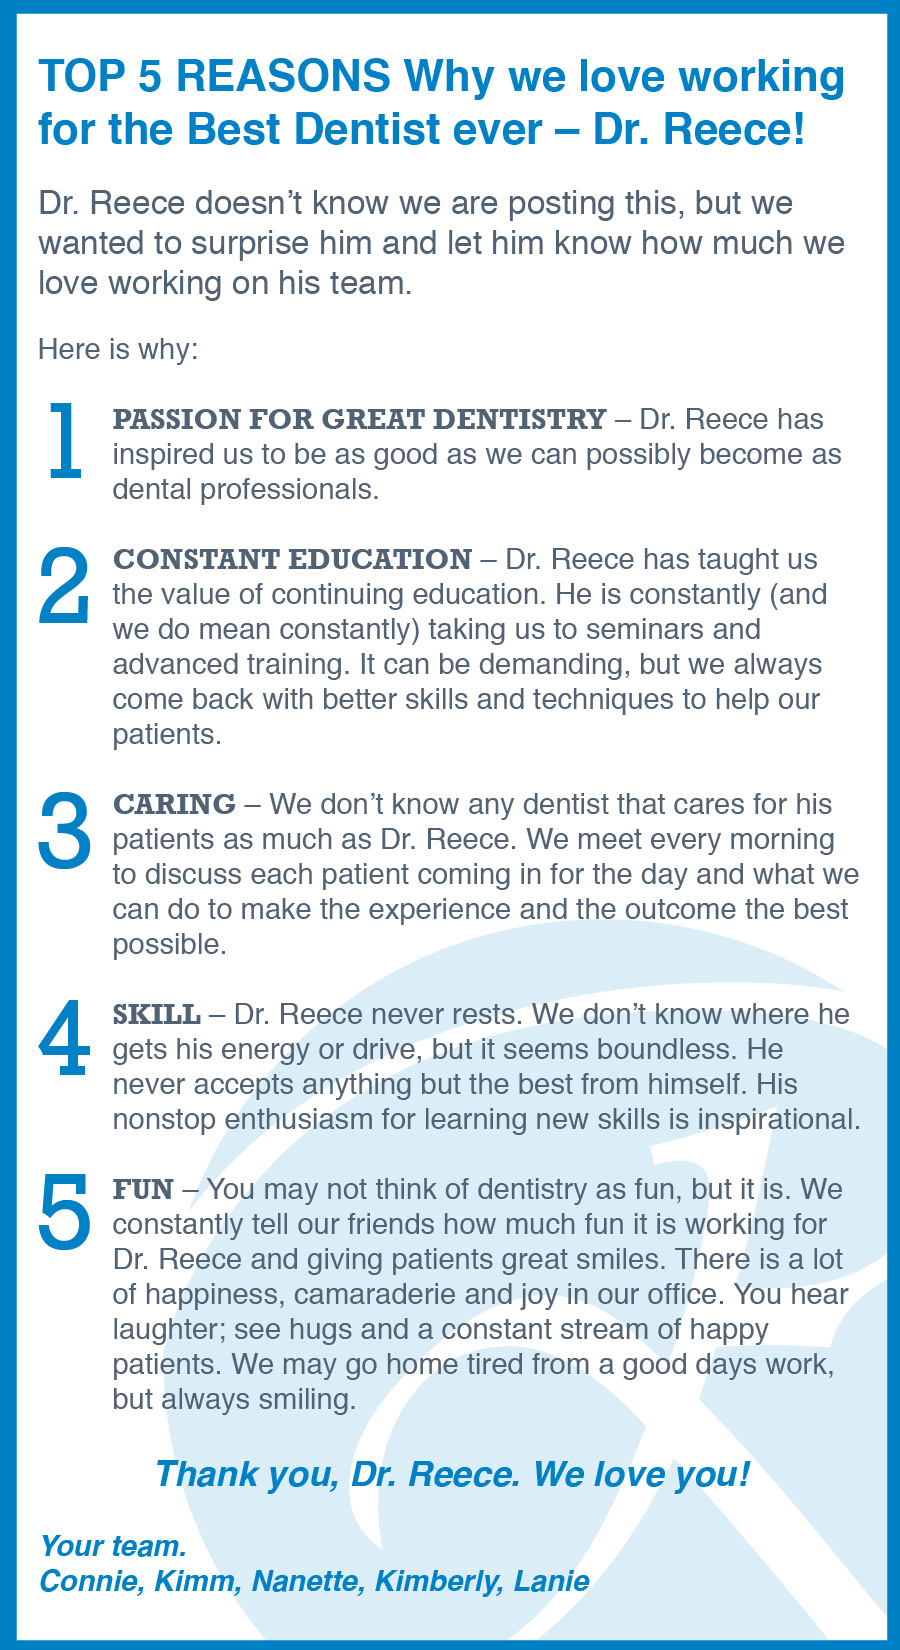 Top 5 Reasons We Love Dr. Reece